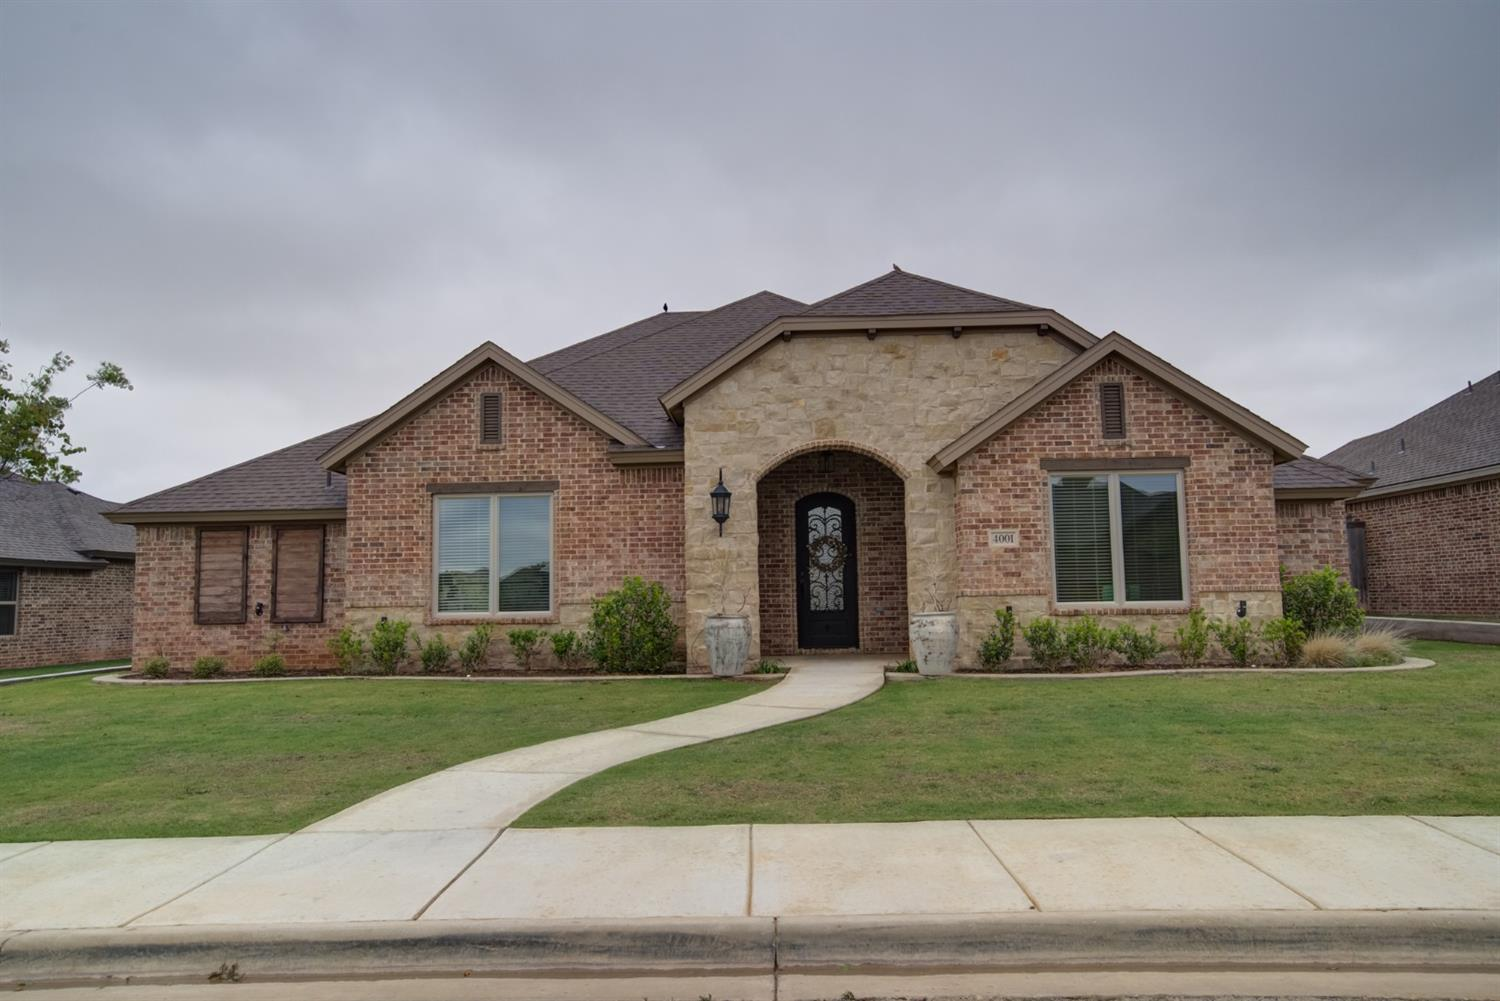 4001 124th Street, Lubbock in Lubbock County, TX 79423 Home for Sale